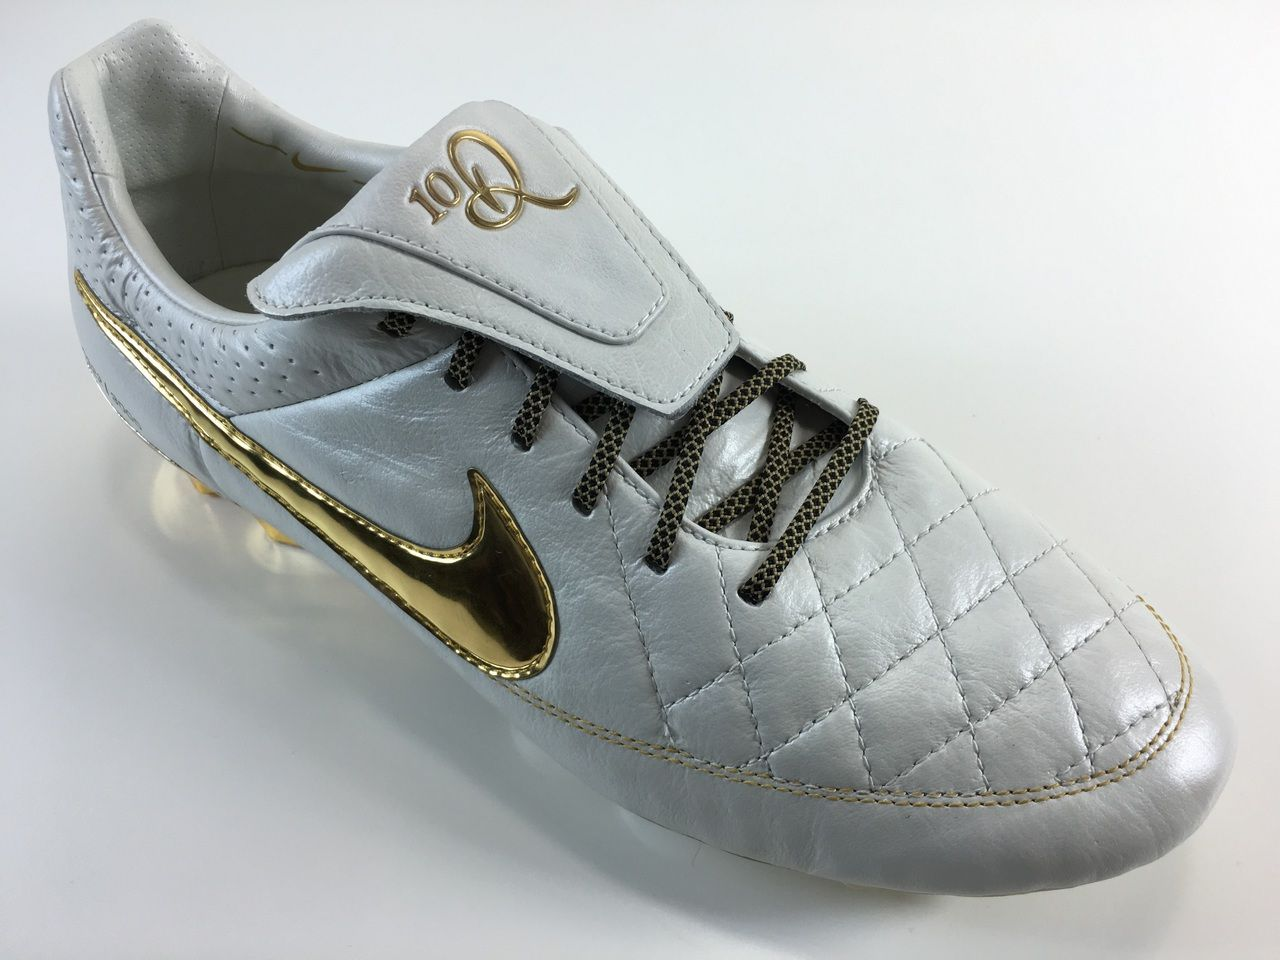 premium selection 38695 6a2b9 Grid Gold Premium | New Nike Tiempo Project | Soccer shoes ...